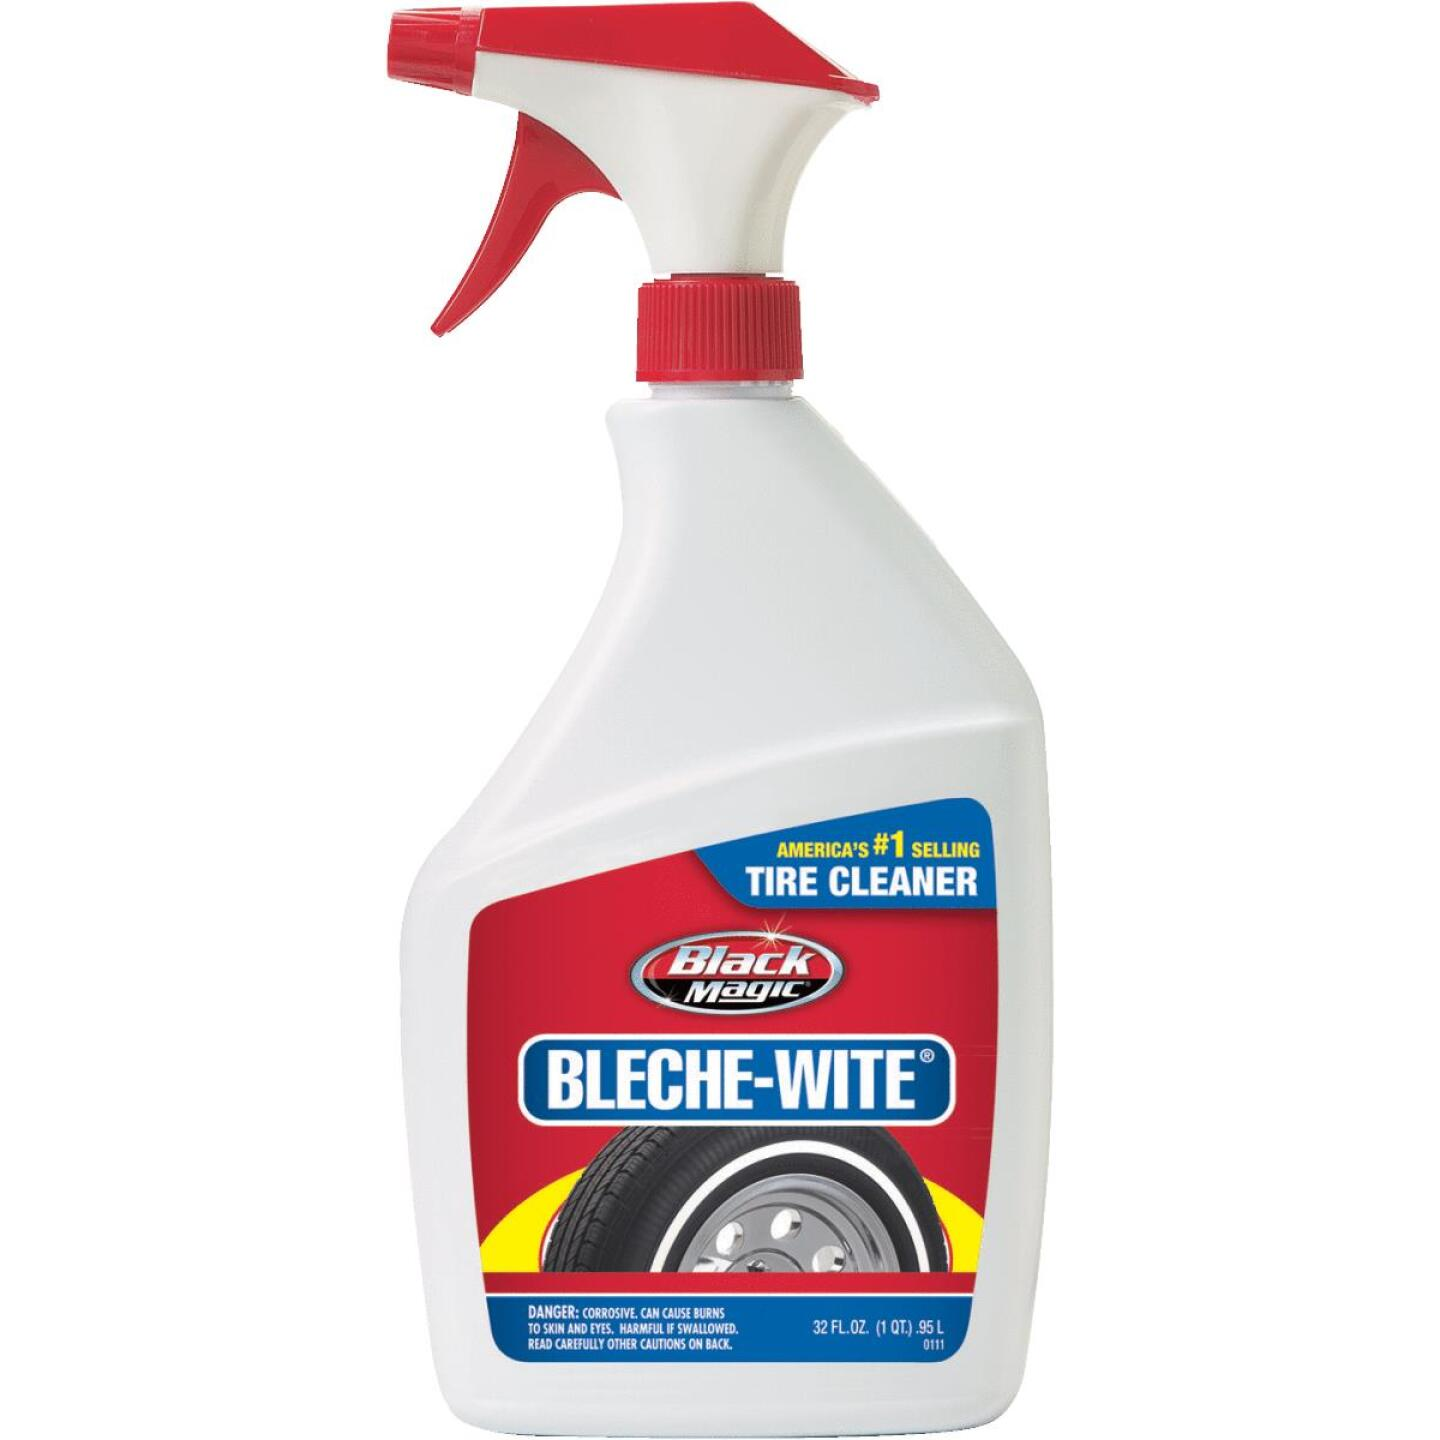 Black Magic Bleche-wite 32 Oz. Trigger Spray Tire Cleaner Image 1